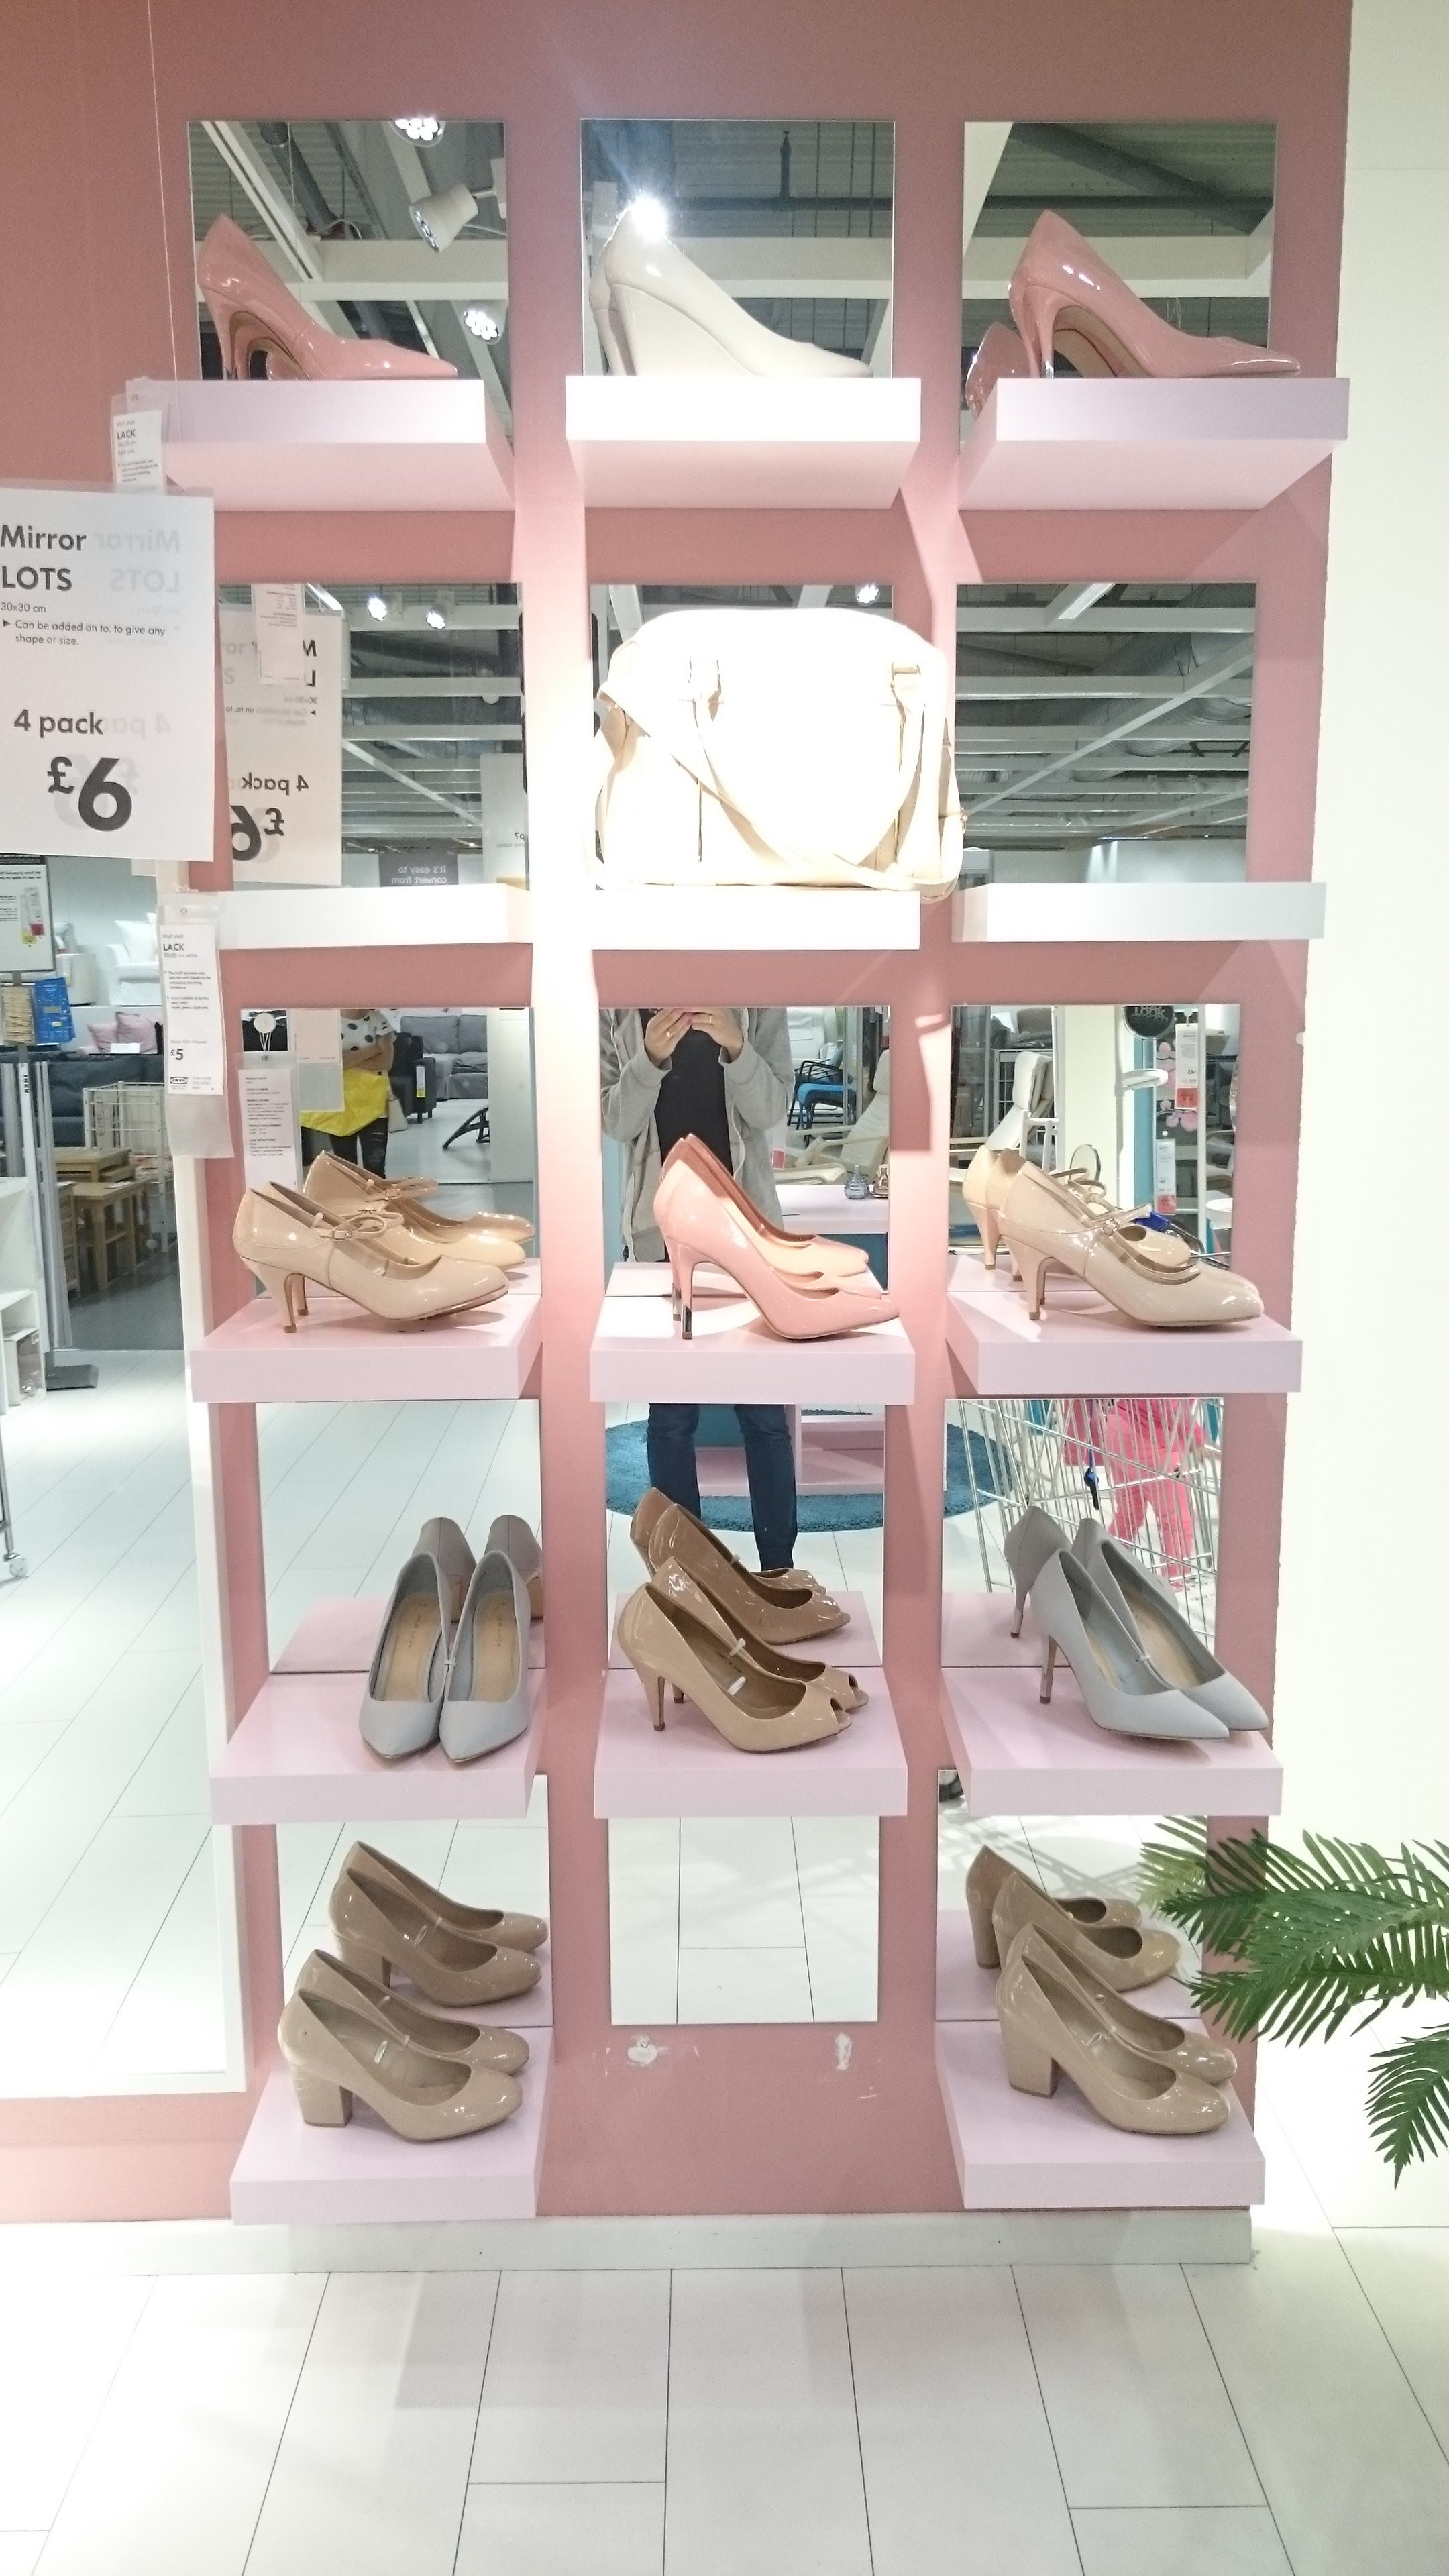 Ikea \'Lack\' shelves and \'Lots\' mirrors for an unusual shoe rack ...